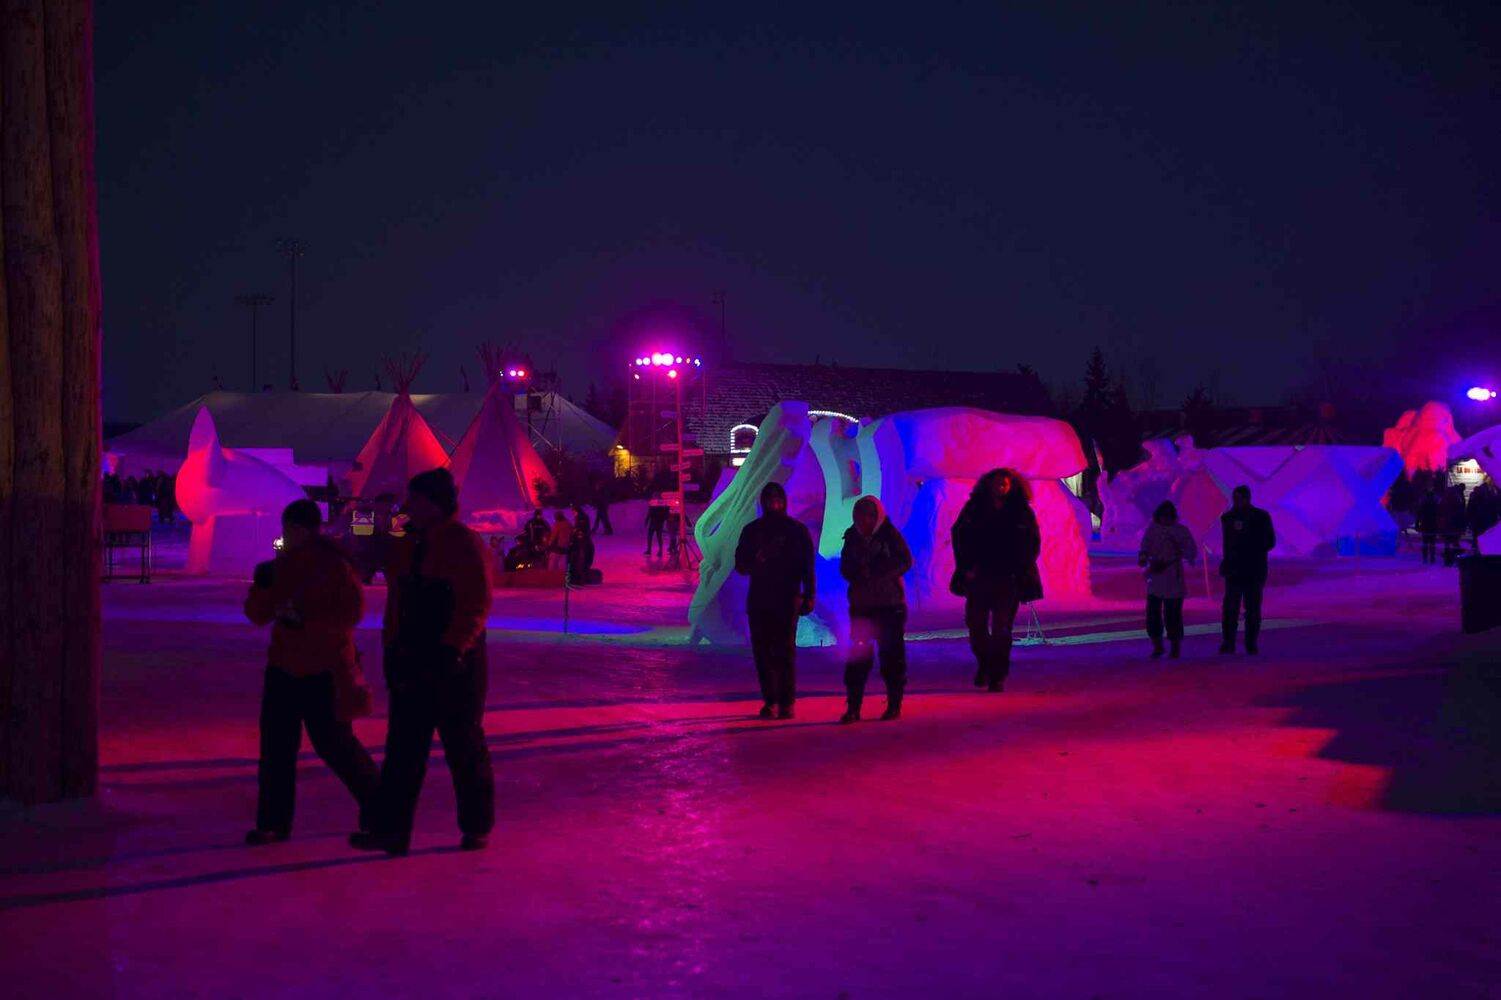 The Festival du Voyageur was a popular place to be Saturday night. The 10-day festival wraps up Sunday, Feb. 23.